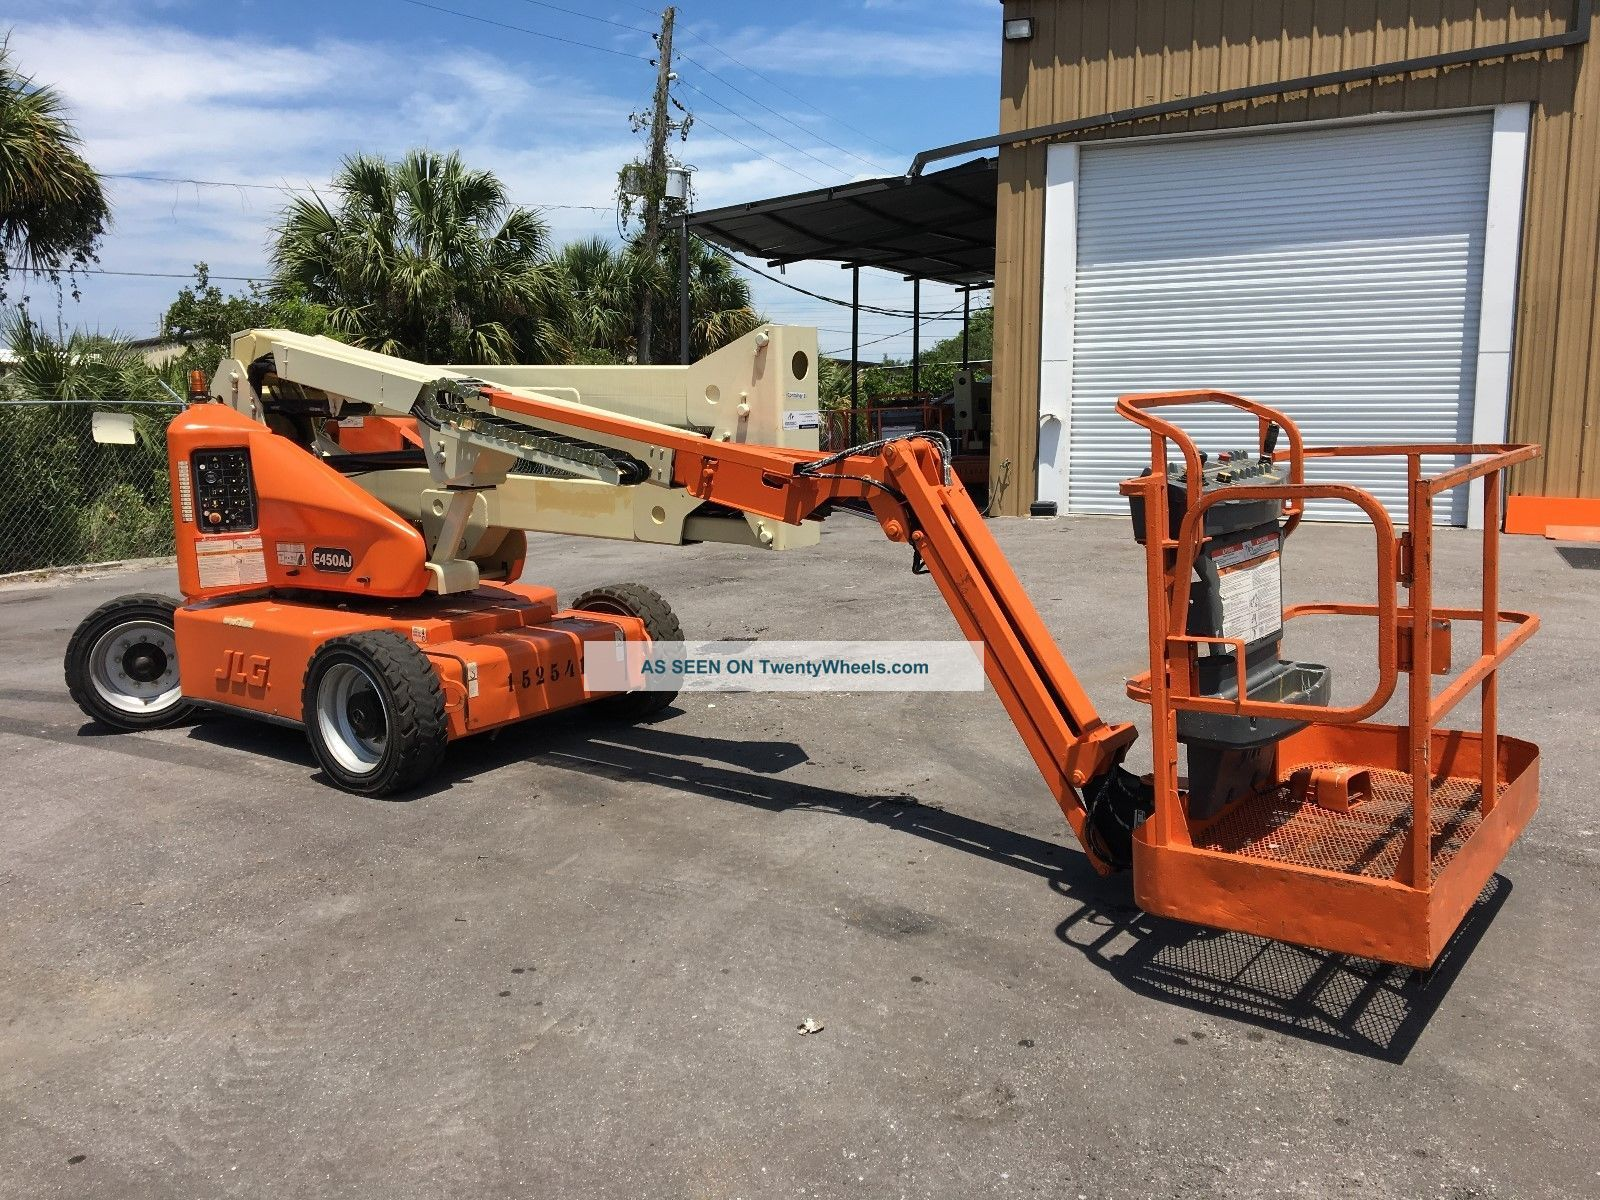 2012 Jlg E450aj Electric Articulating Boom Lift Scissor & Boom Lifts photo